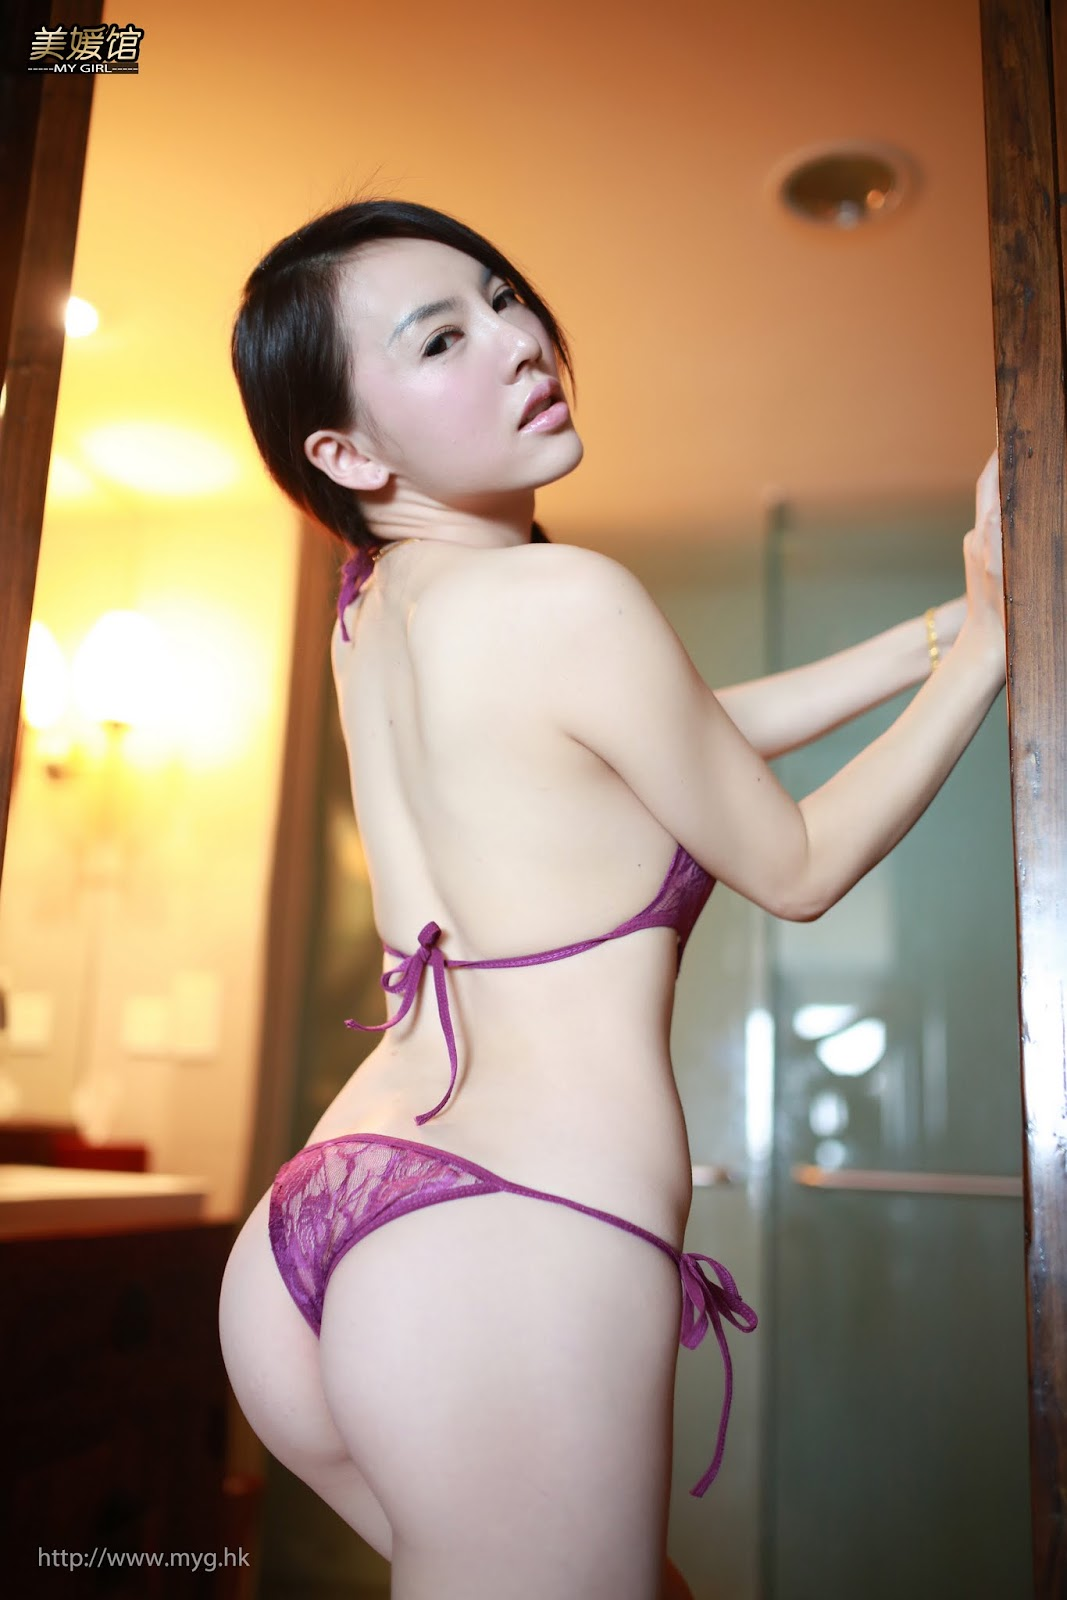 660A1495 - MYGIRL NO.27 Photo Nude Hot